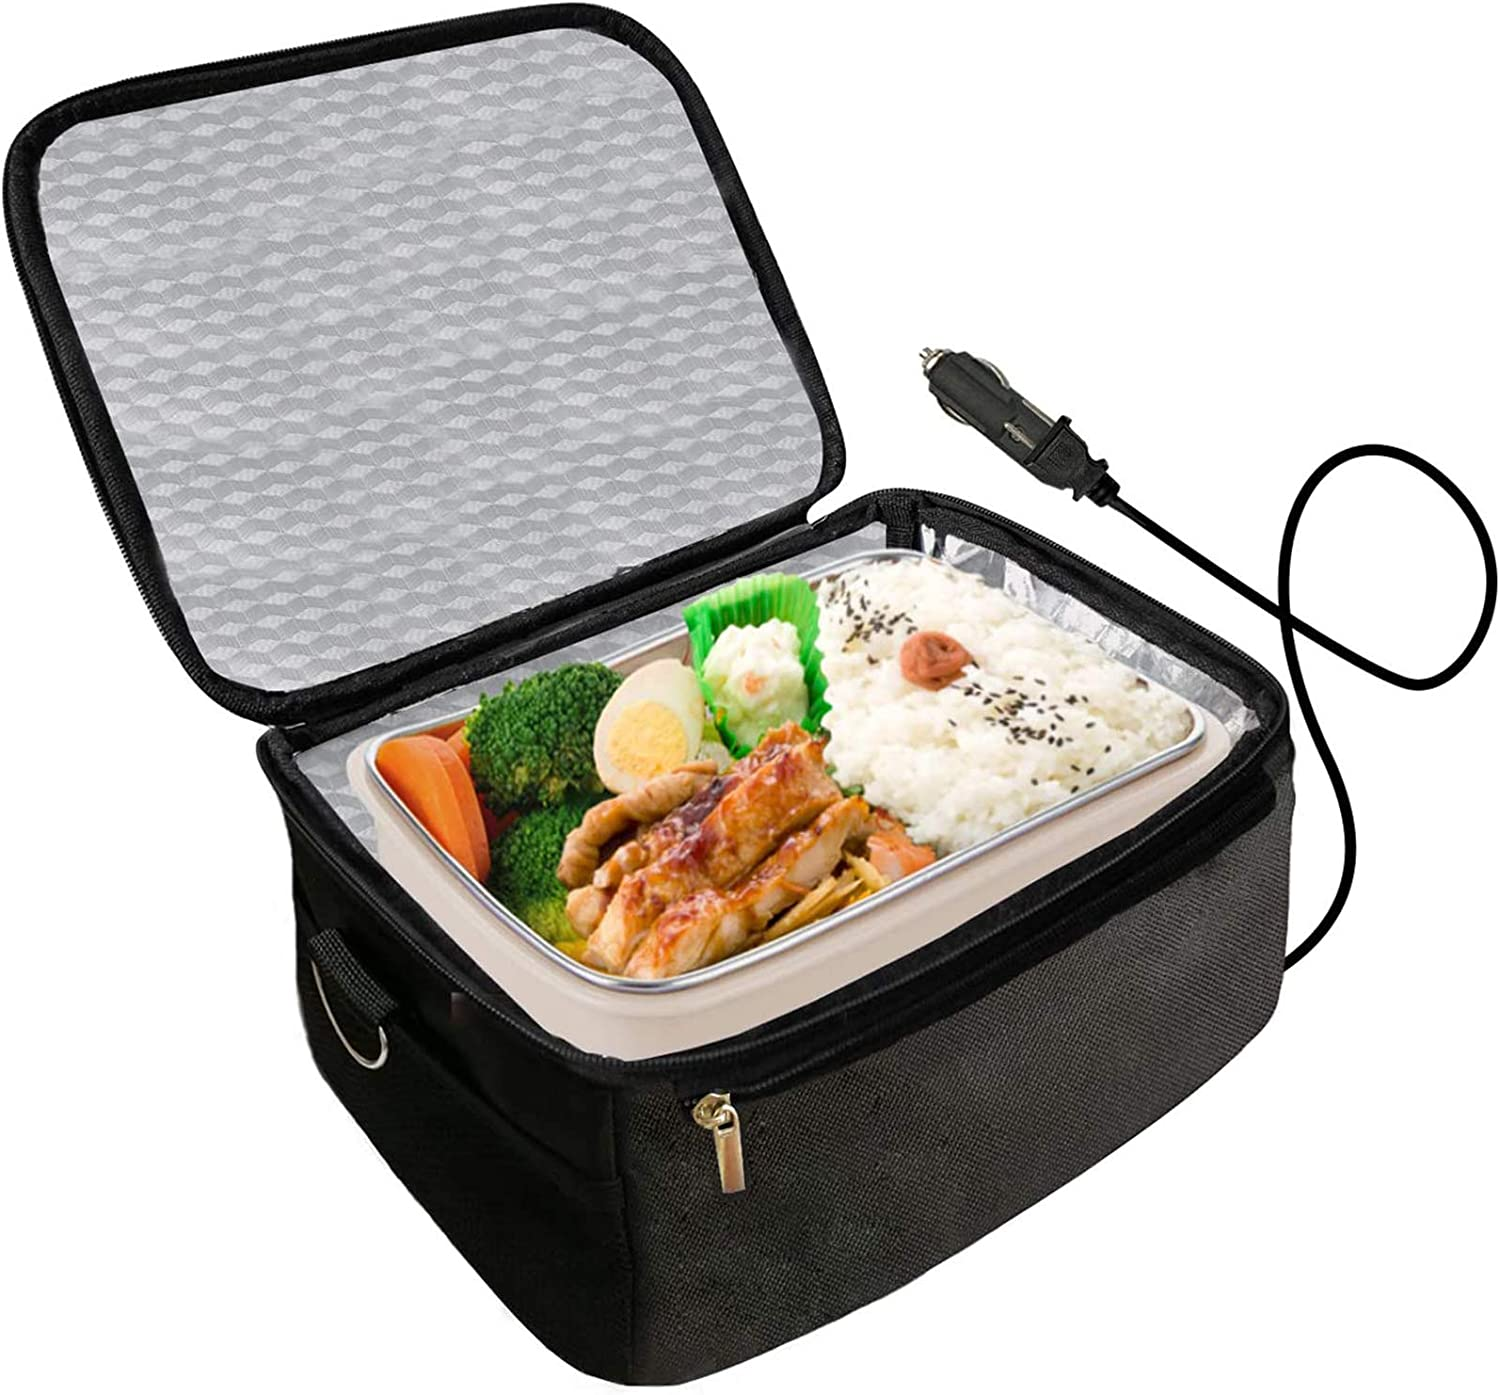 Portable Oven - 12V Personal Food Warmer,Car Heating Lunch Box,Electric Slow Cooker For Meals Reheating & Raw Food Cooking for Road Trip/Office Work/Picnic/Camping/Family gathering